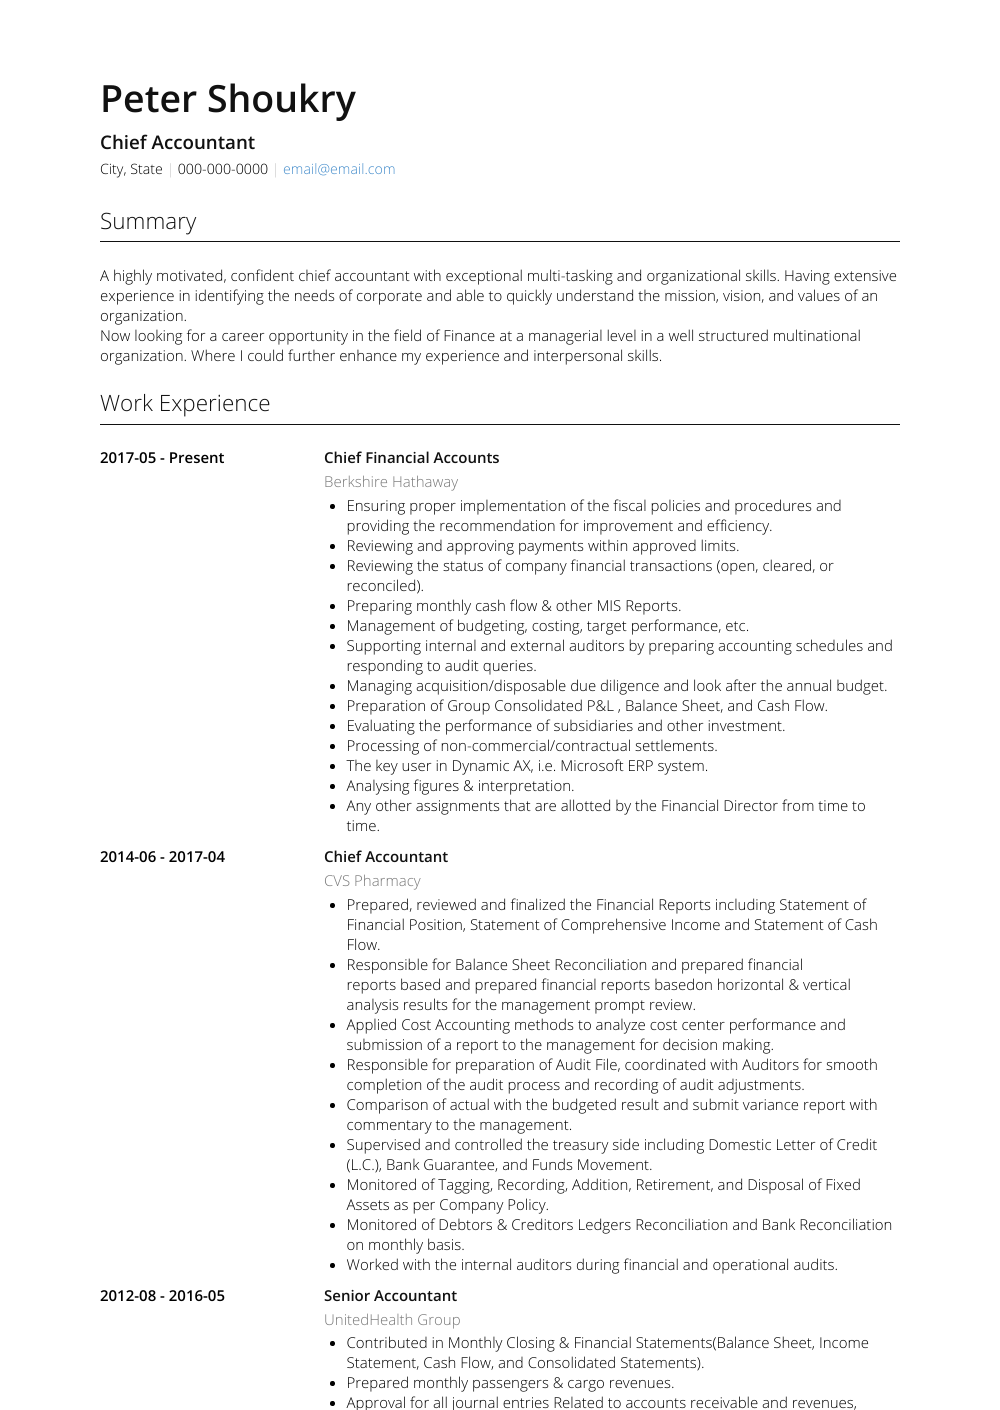 Chief Accountant Resume Sample and Template